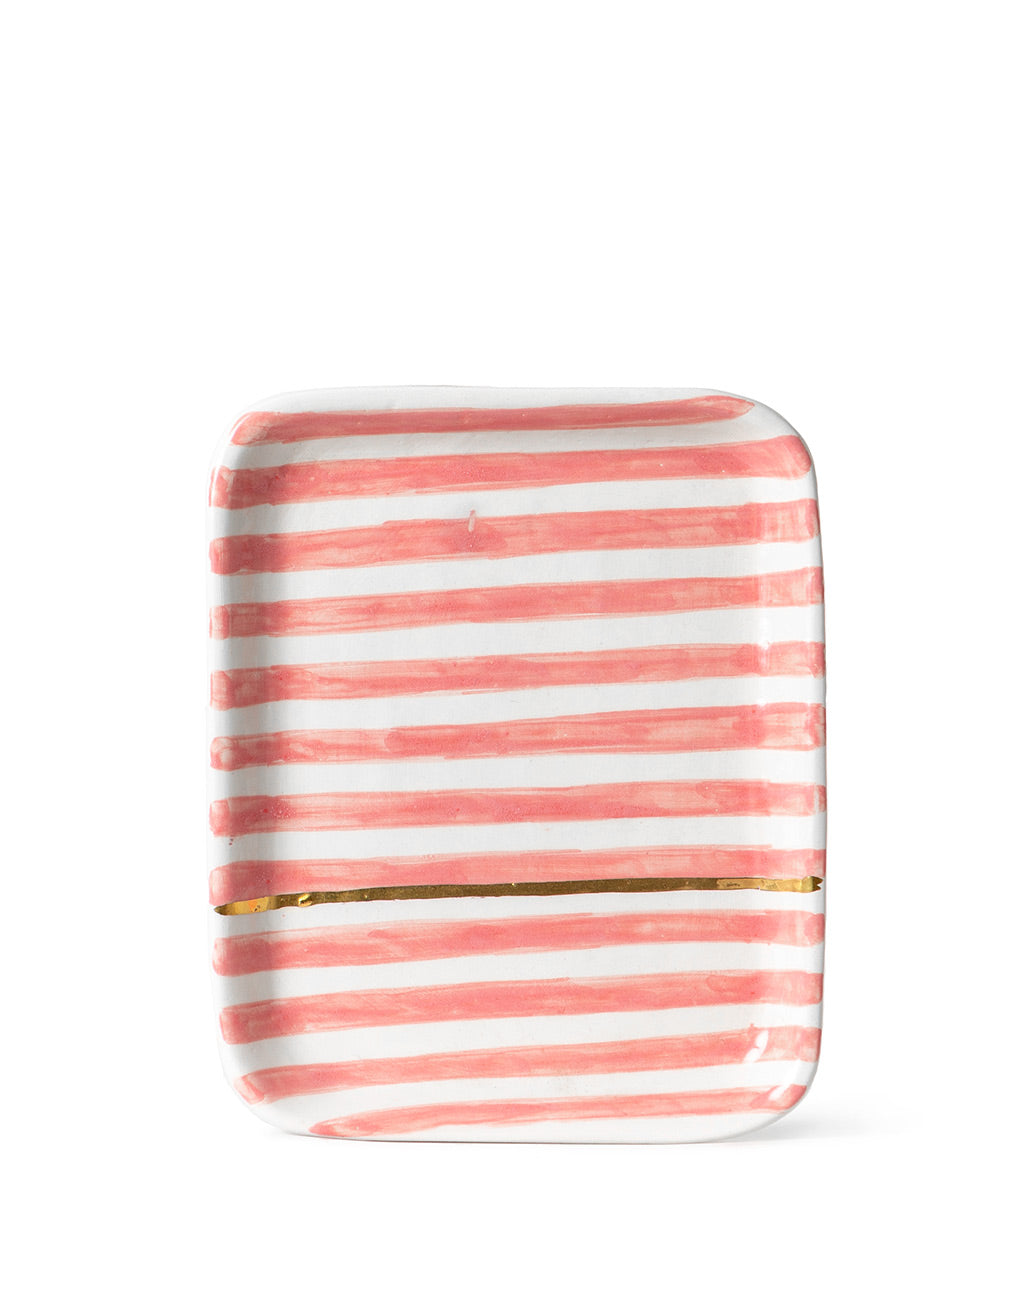 Ceramic Tray - Blush Stripe